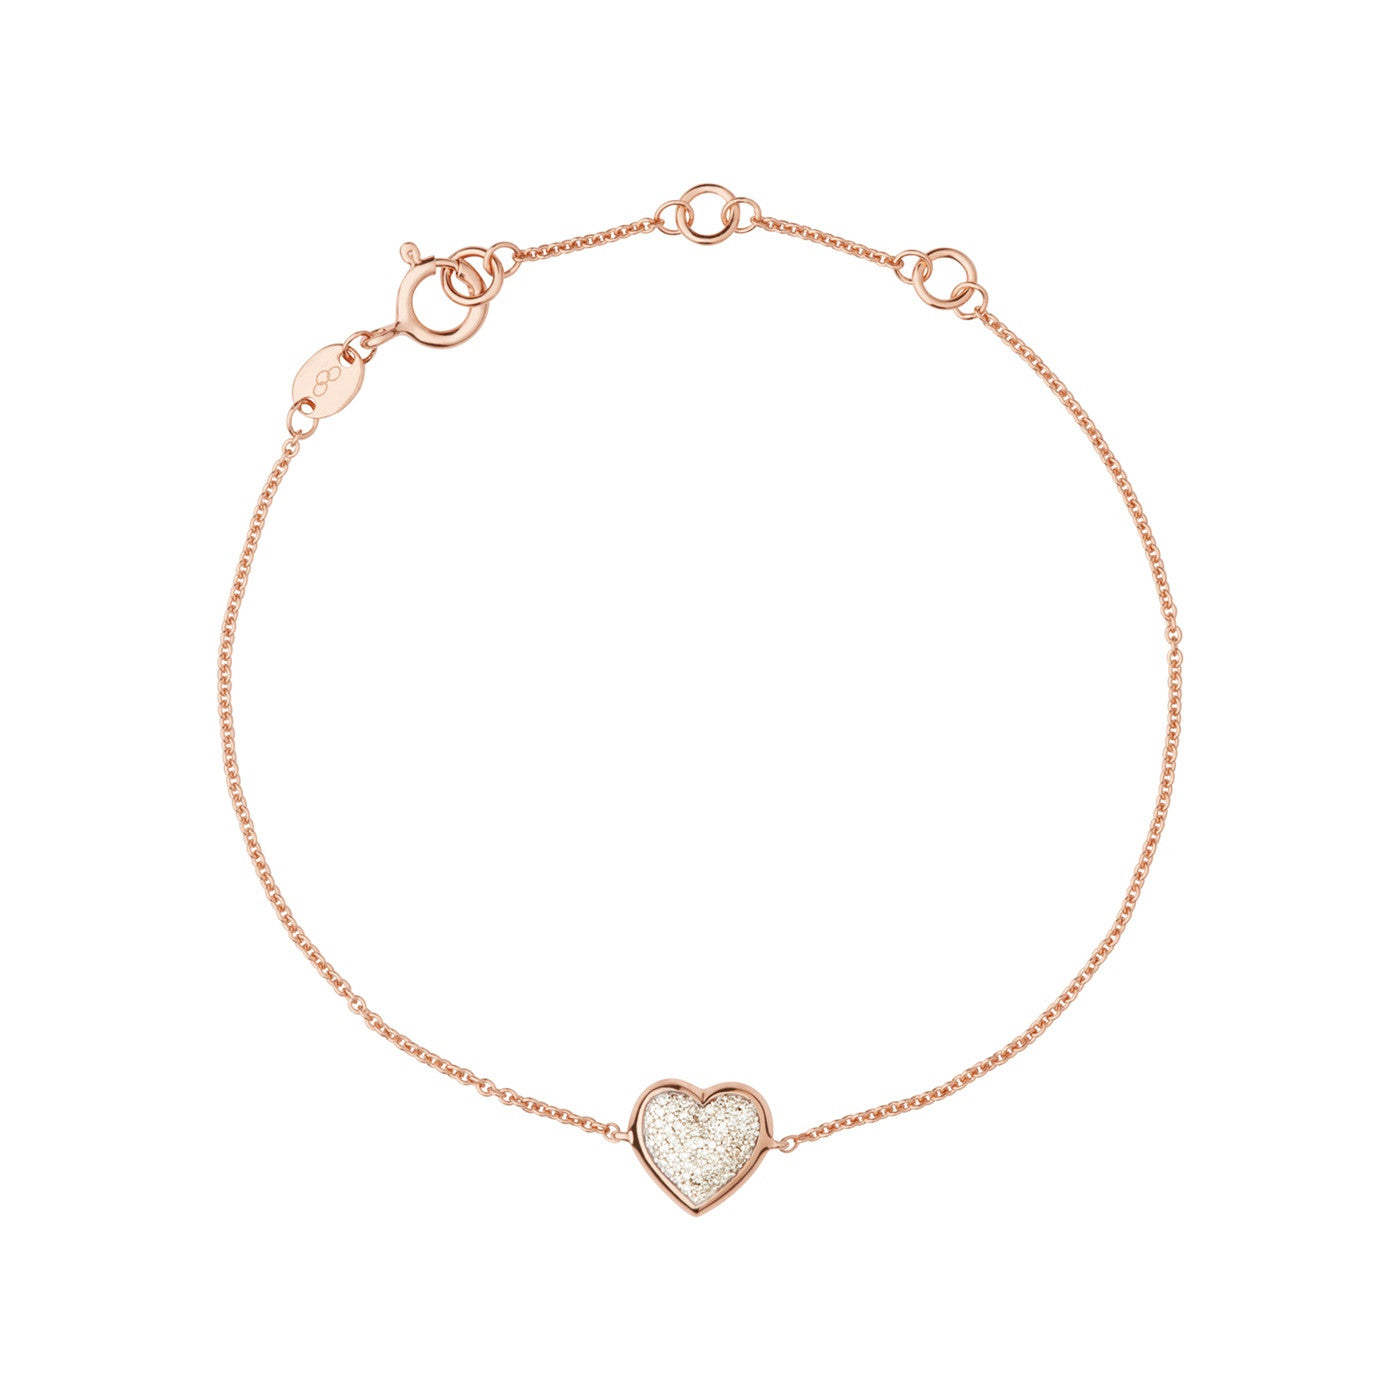 Links of London Diamond Essentials 18K Rose Gold Vermeil & Pave Heart Bracelet - 5010.2848